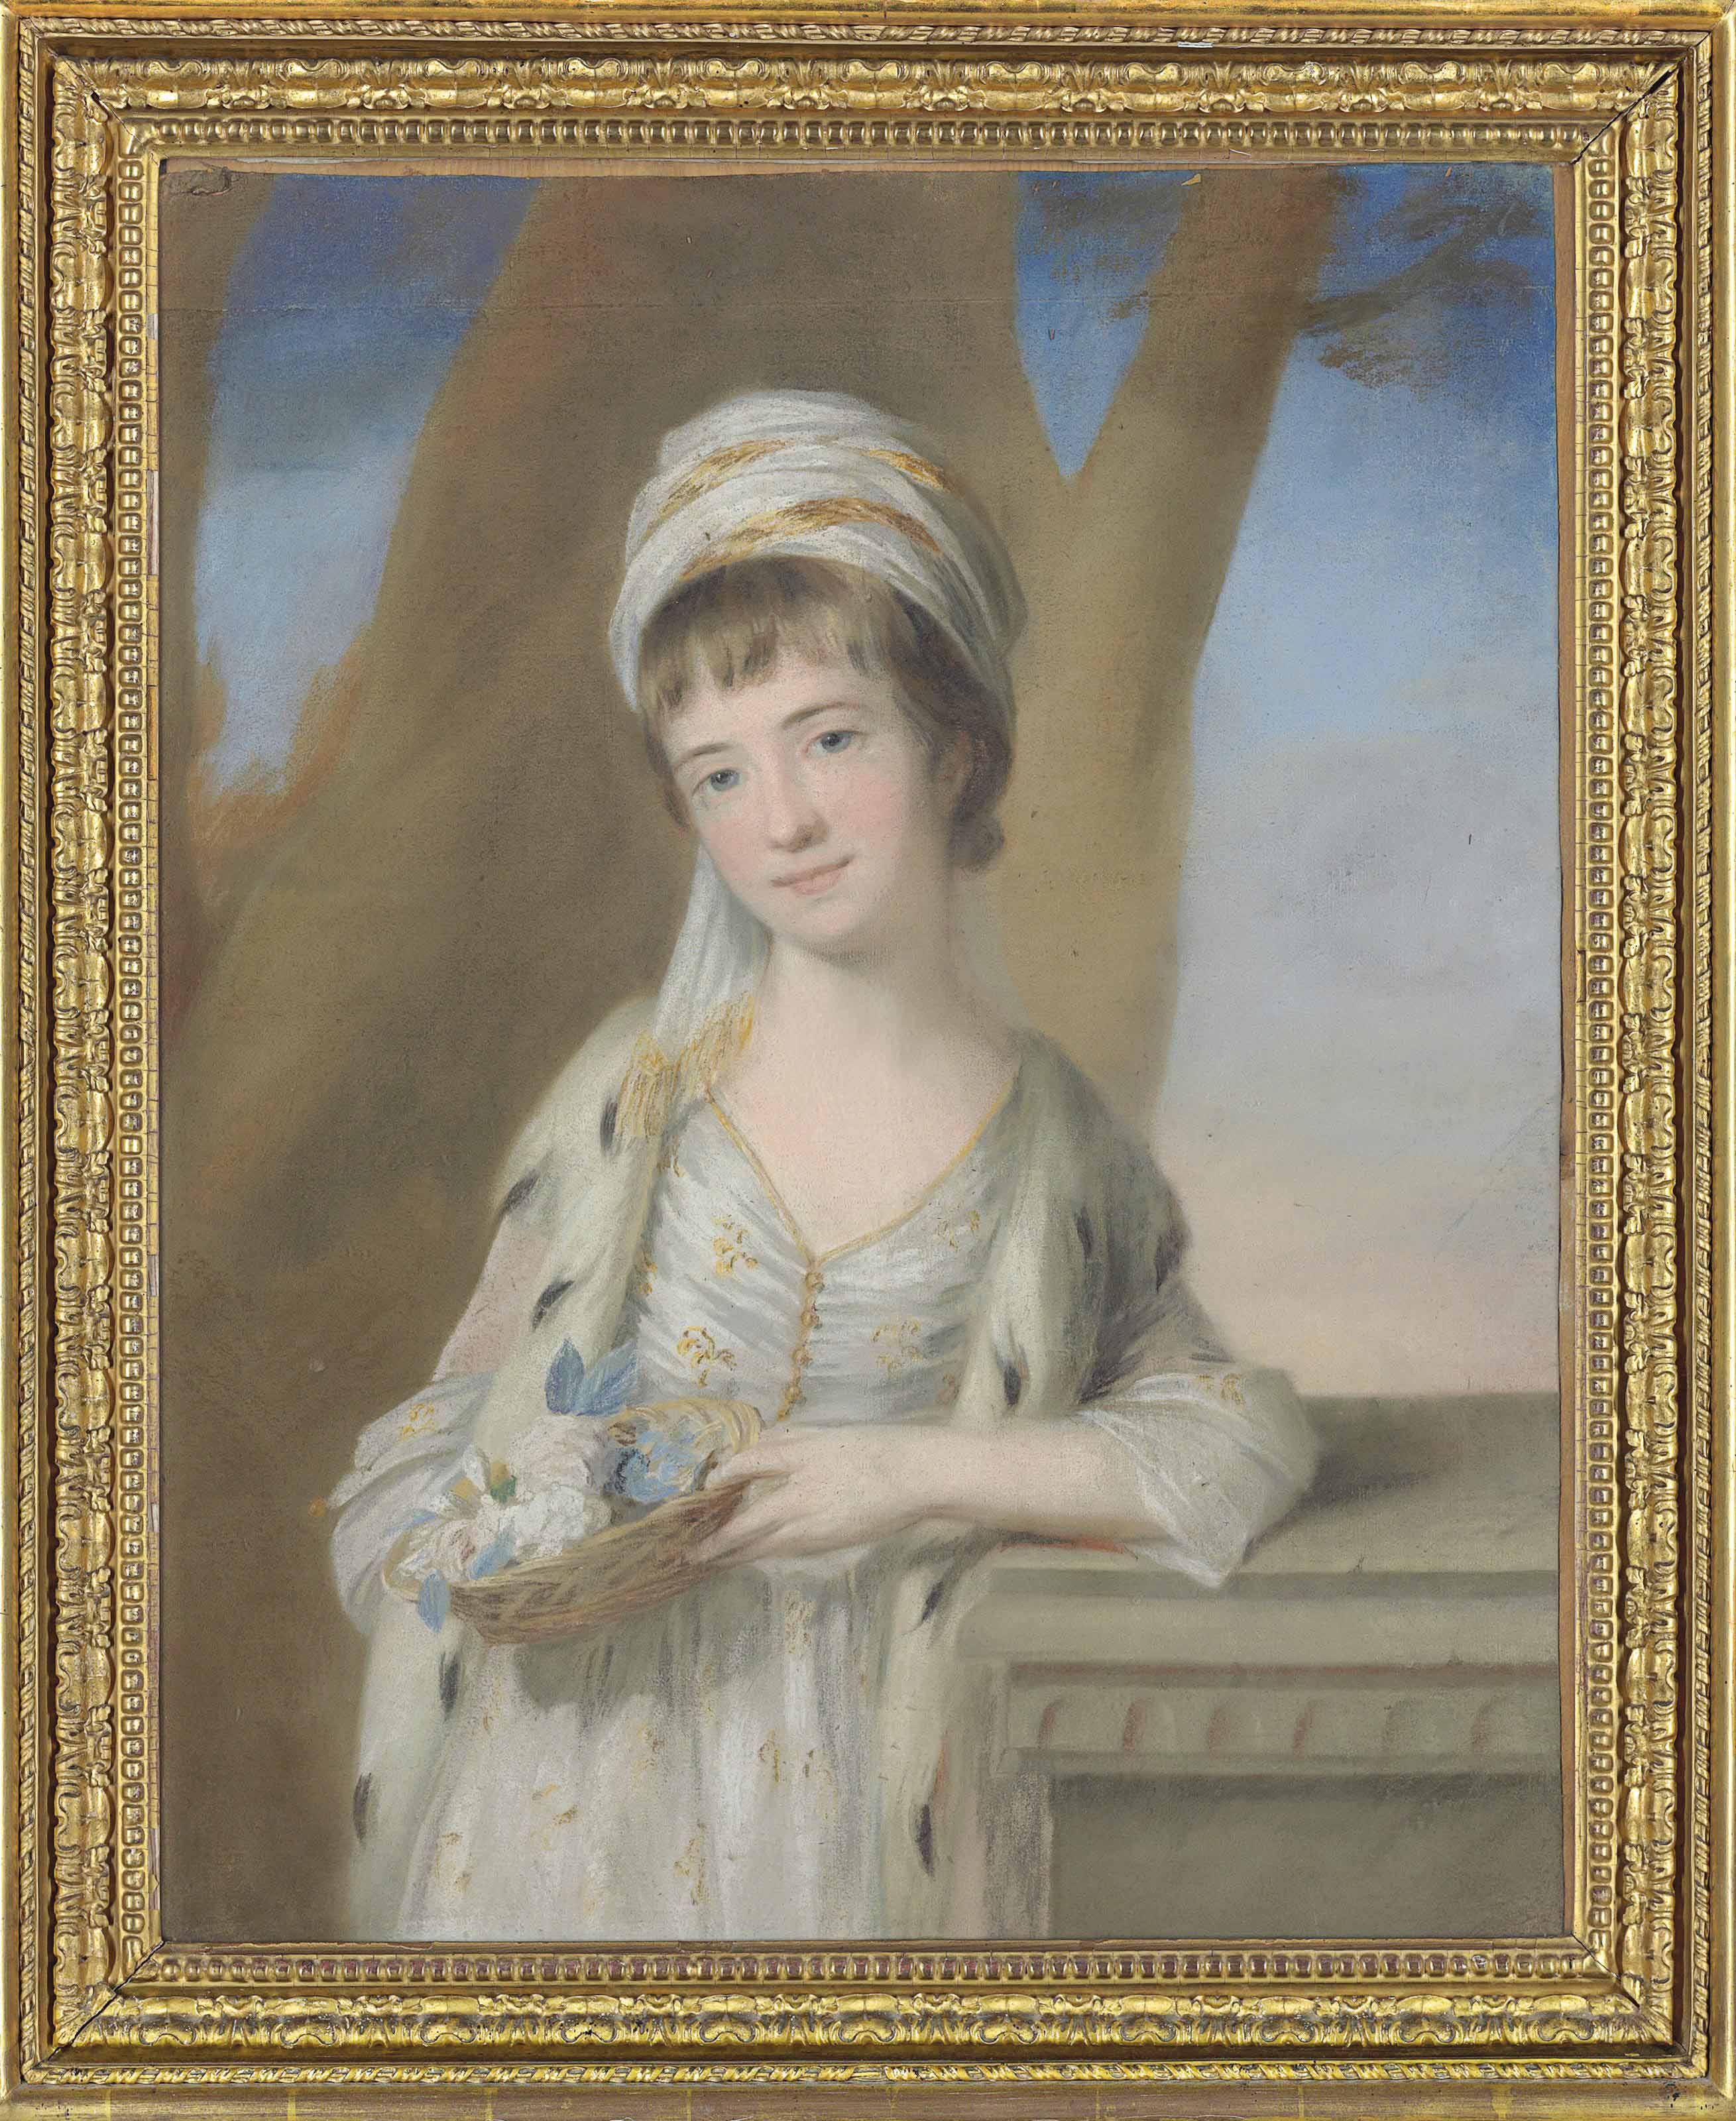 Portrait of Mary Sturt (1759-?), three-quarter-length, standing, holding a basket of flowers